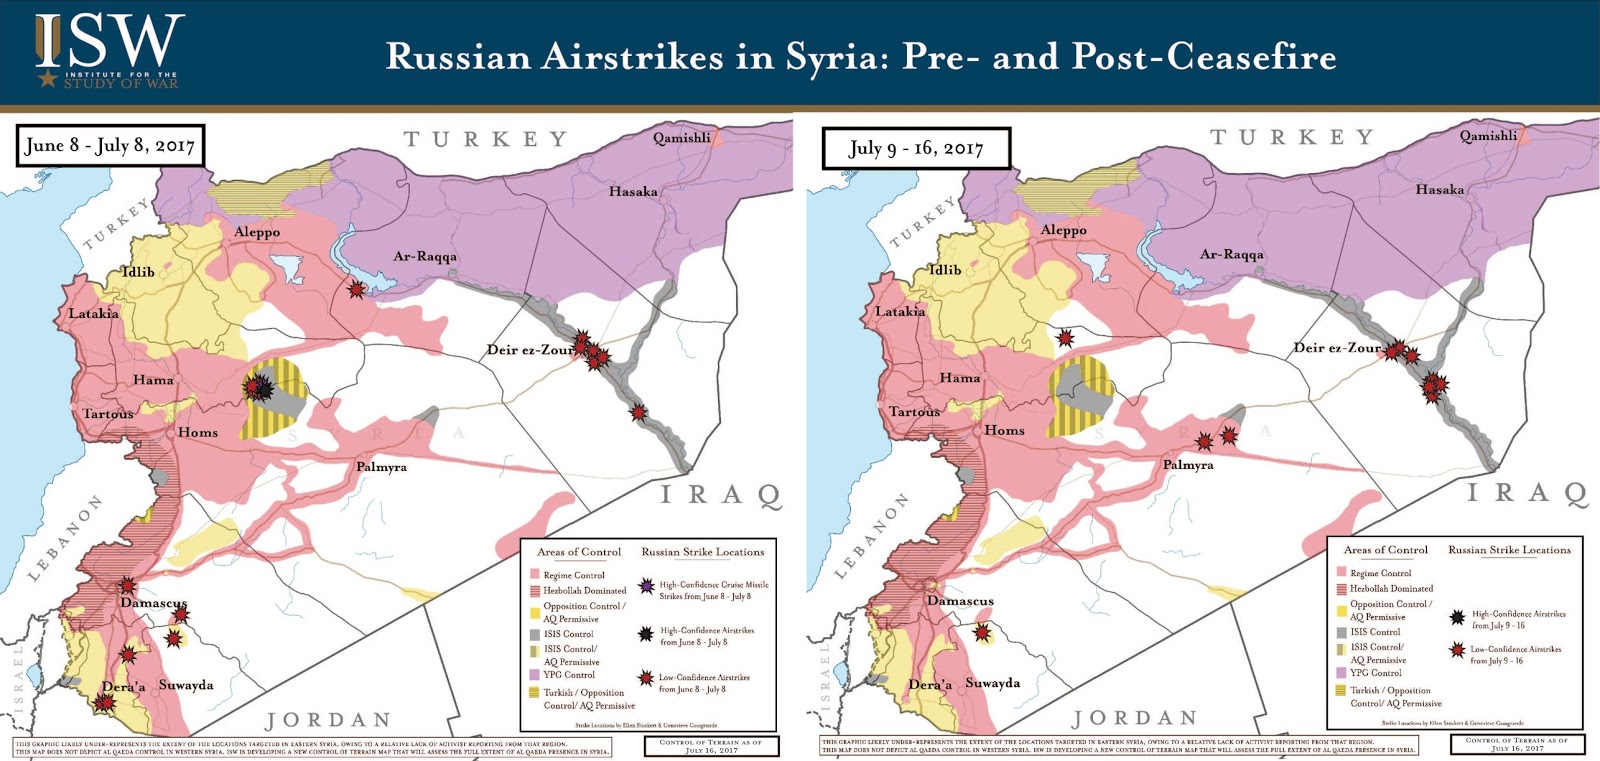 Russian Airstrikes in Syria: Pre- and Post-Ceasefire